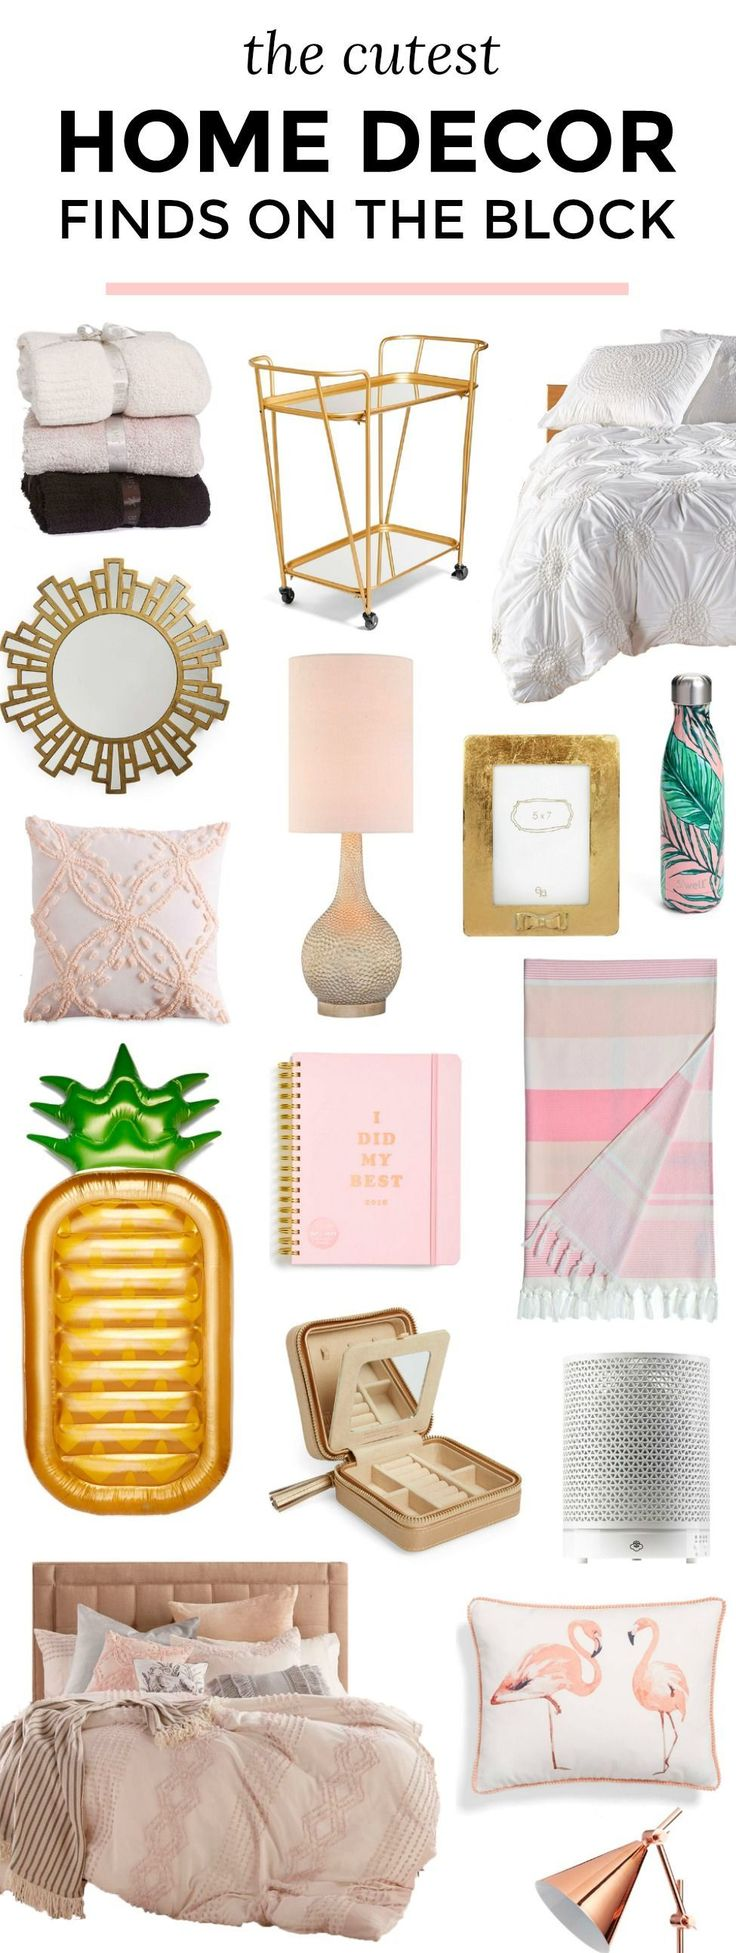 The cutest and most affordable home decor finds that you will LOVE. P.S. All of these feminine home decor items are currently on sale in the Nordstrom Anniversary Sale for crazy low prices. To see the best home decor deals from the Nordstrom Anniversary Sale, click through this pin from Orlando, Florida lifestyle blogger Ashley Brooke Nicholas! | cute home decor, home decor ideas, pink gold and white home decor, cute bedding, gold bar cart, pink and green palm trees, flamingos, gold mirrors